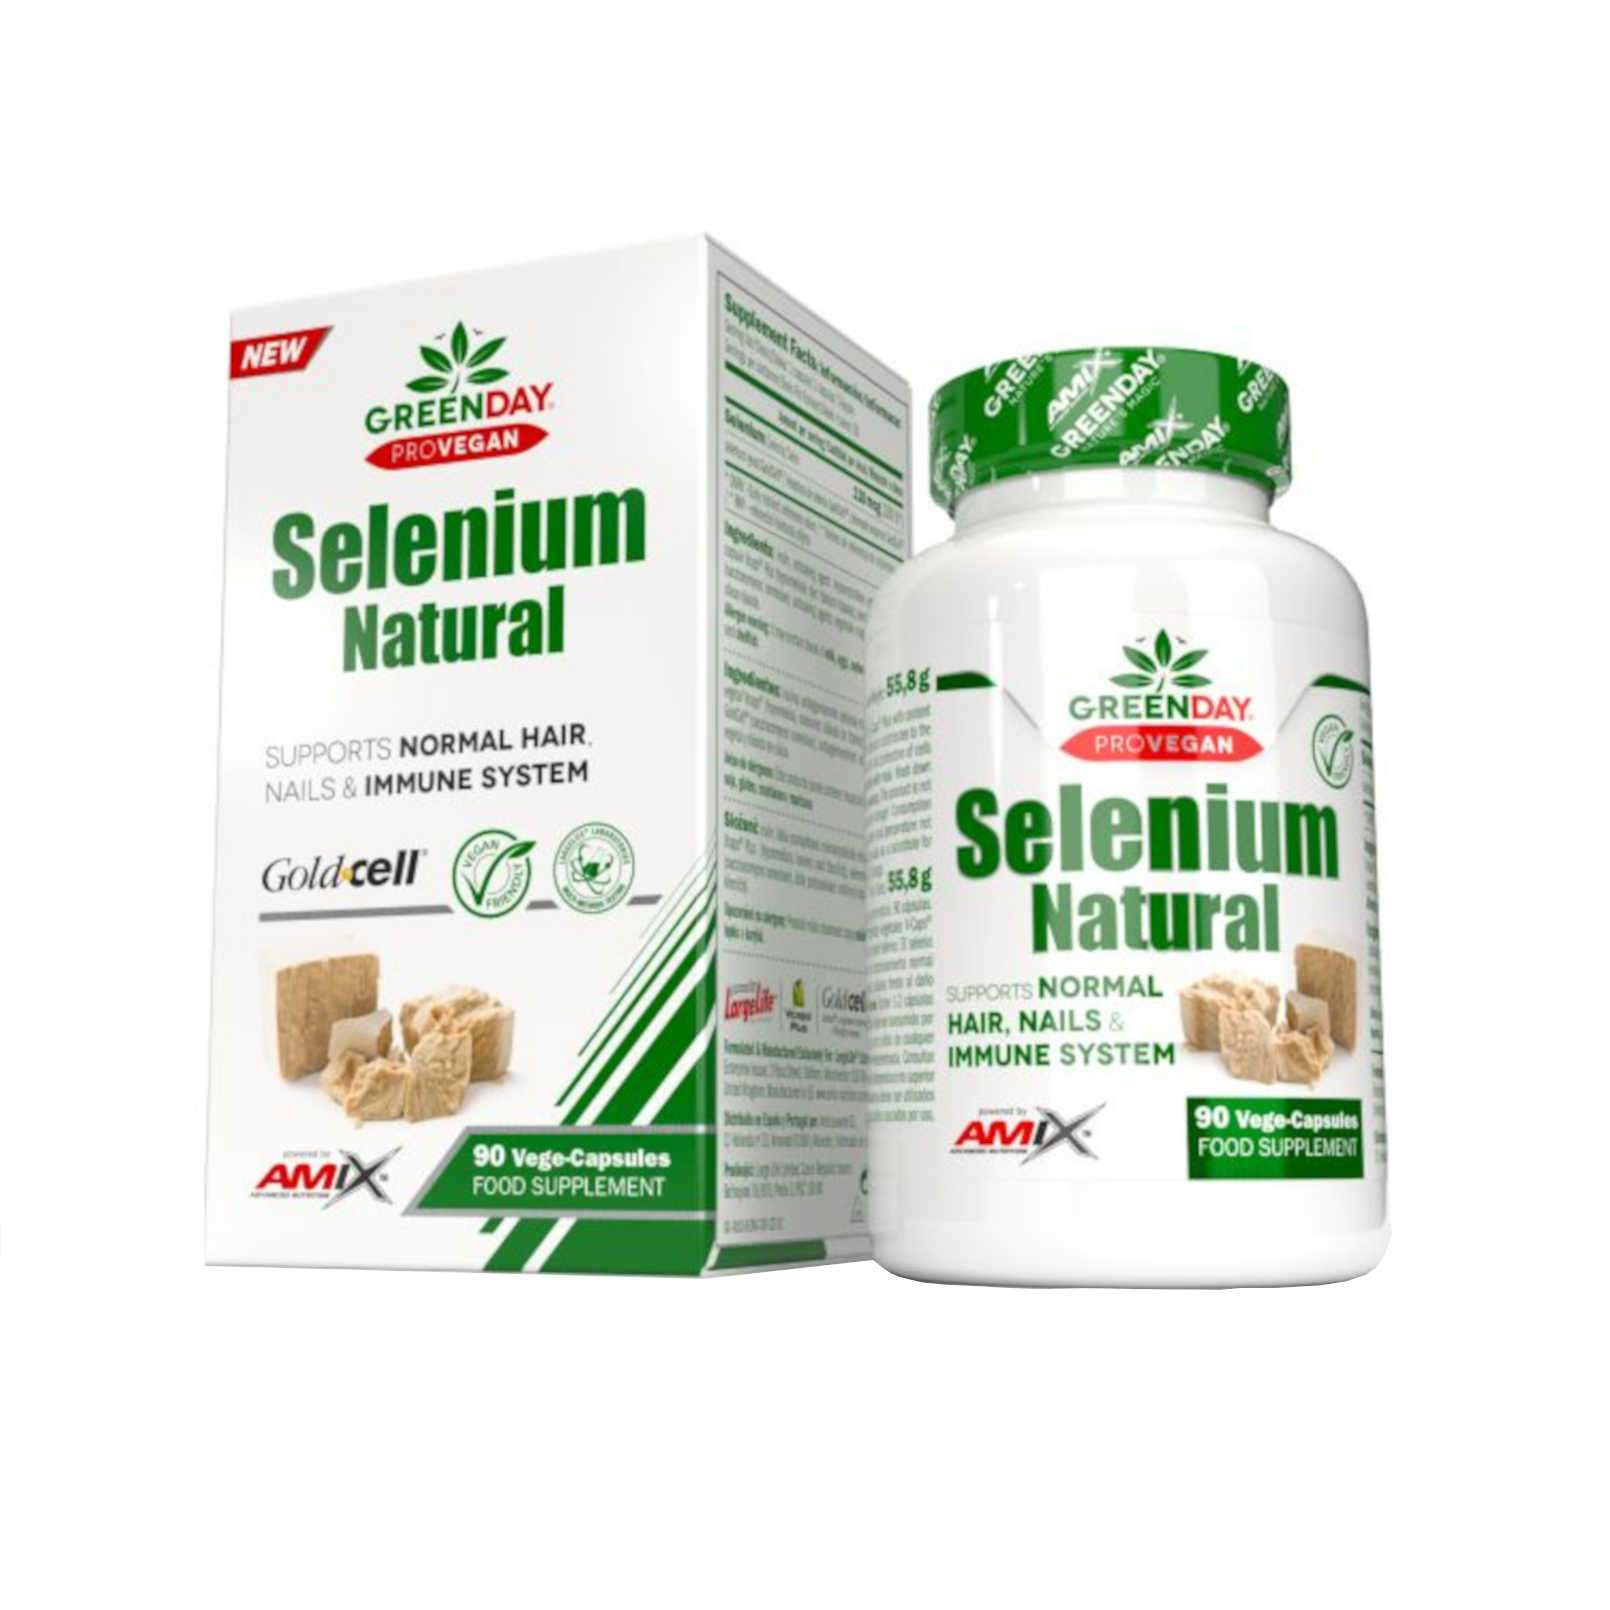 SELENIUM NATURAL - 90 veg caps